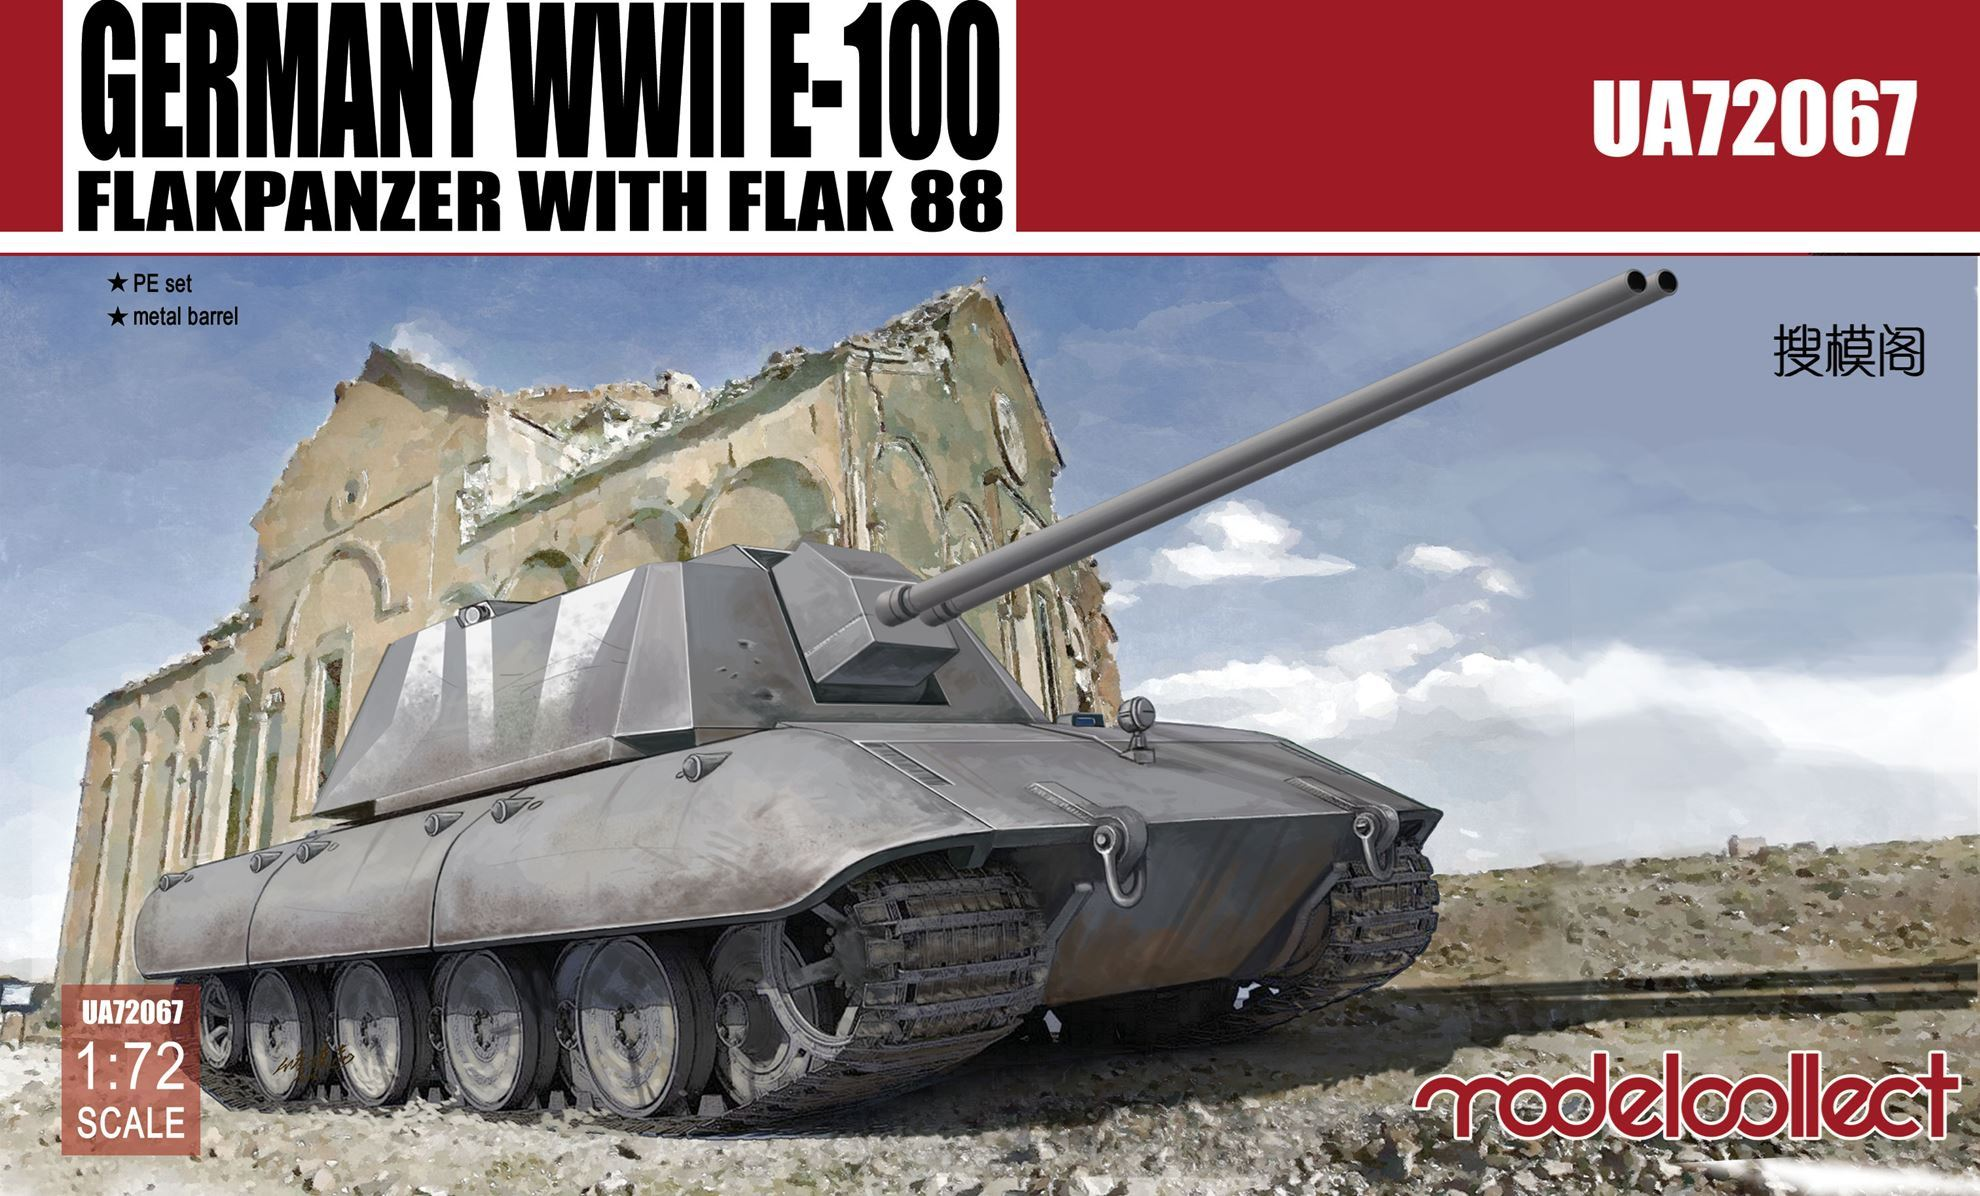 Germany WWII E-100 Flakpanzer with flak 88